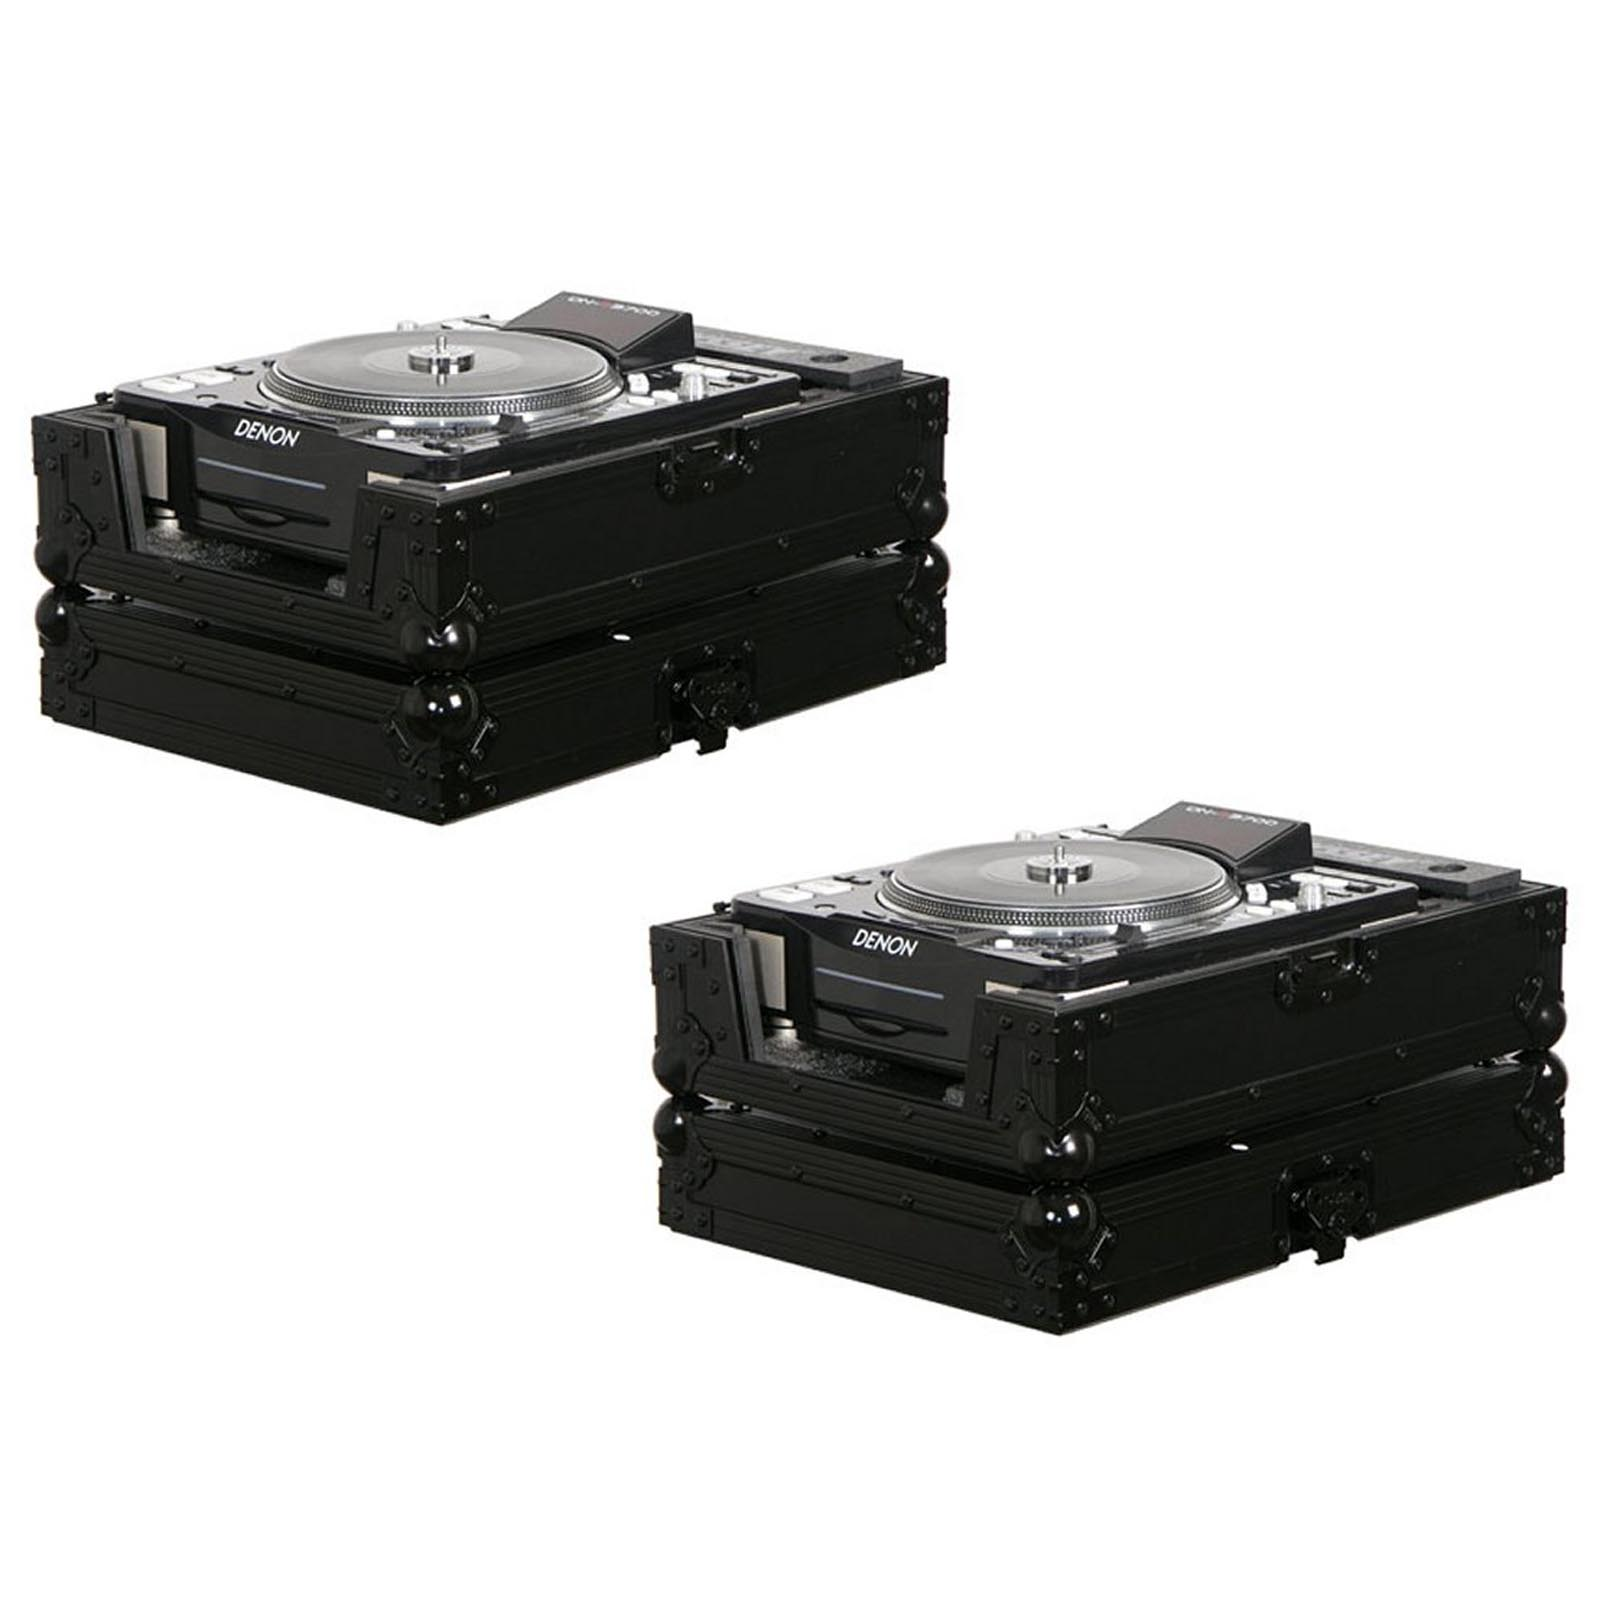 2 Odyssey FZCDJBL Black Label Pro DJ Cases Pioneer CDJ800 CDJ1000 CDJ2000 etc. by Odyssey Case